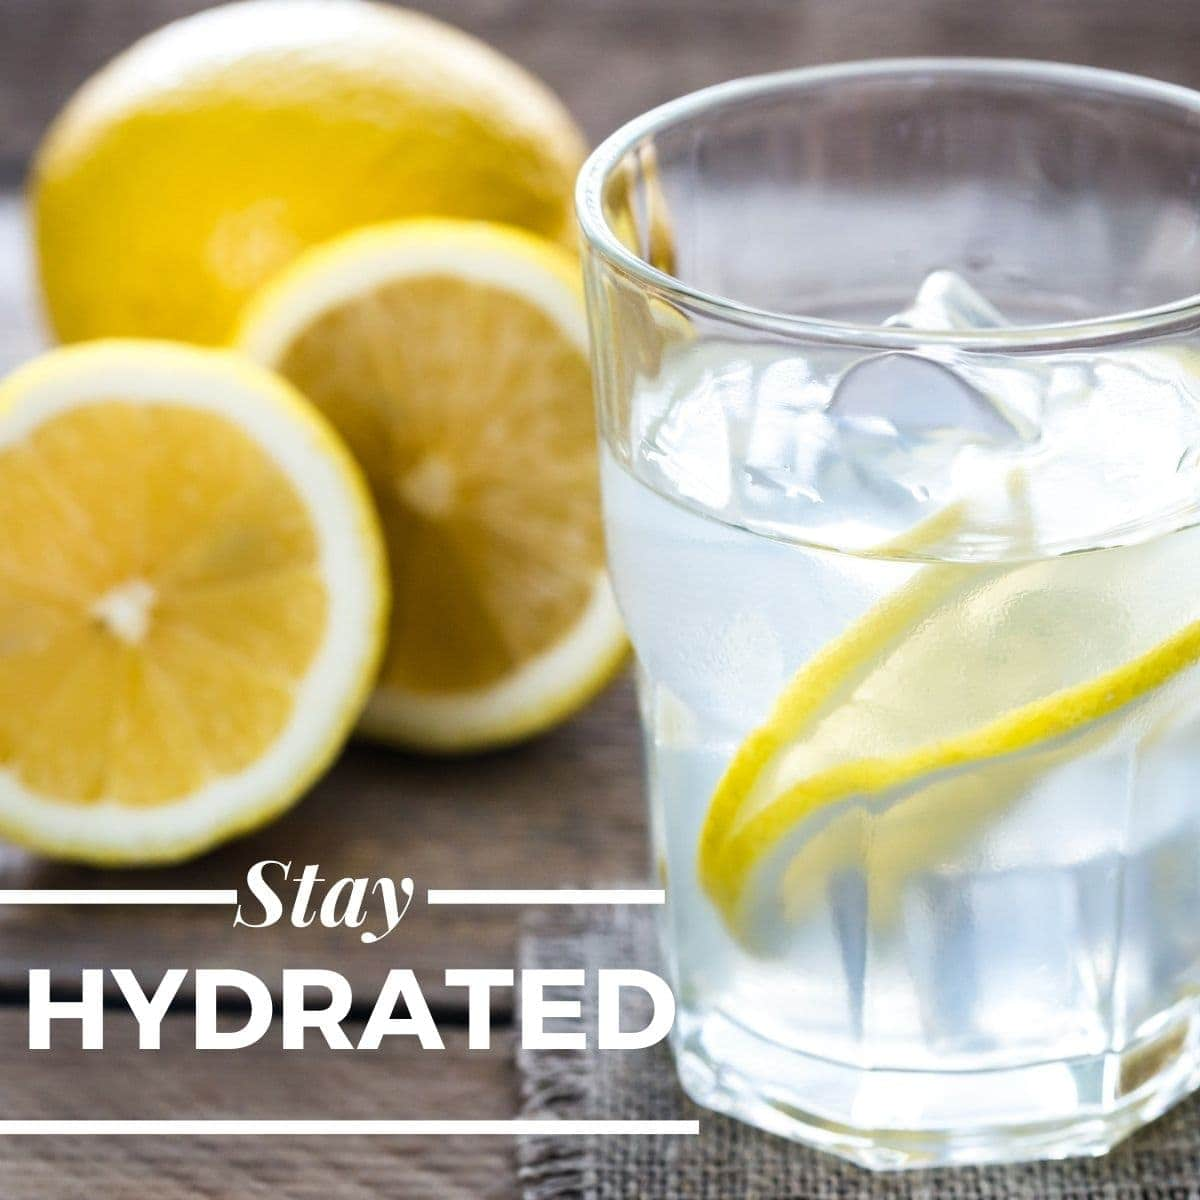 photo of a cup of water with lemon slices and text-stay hydrated.